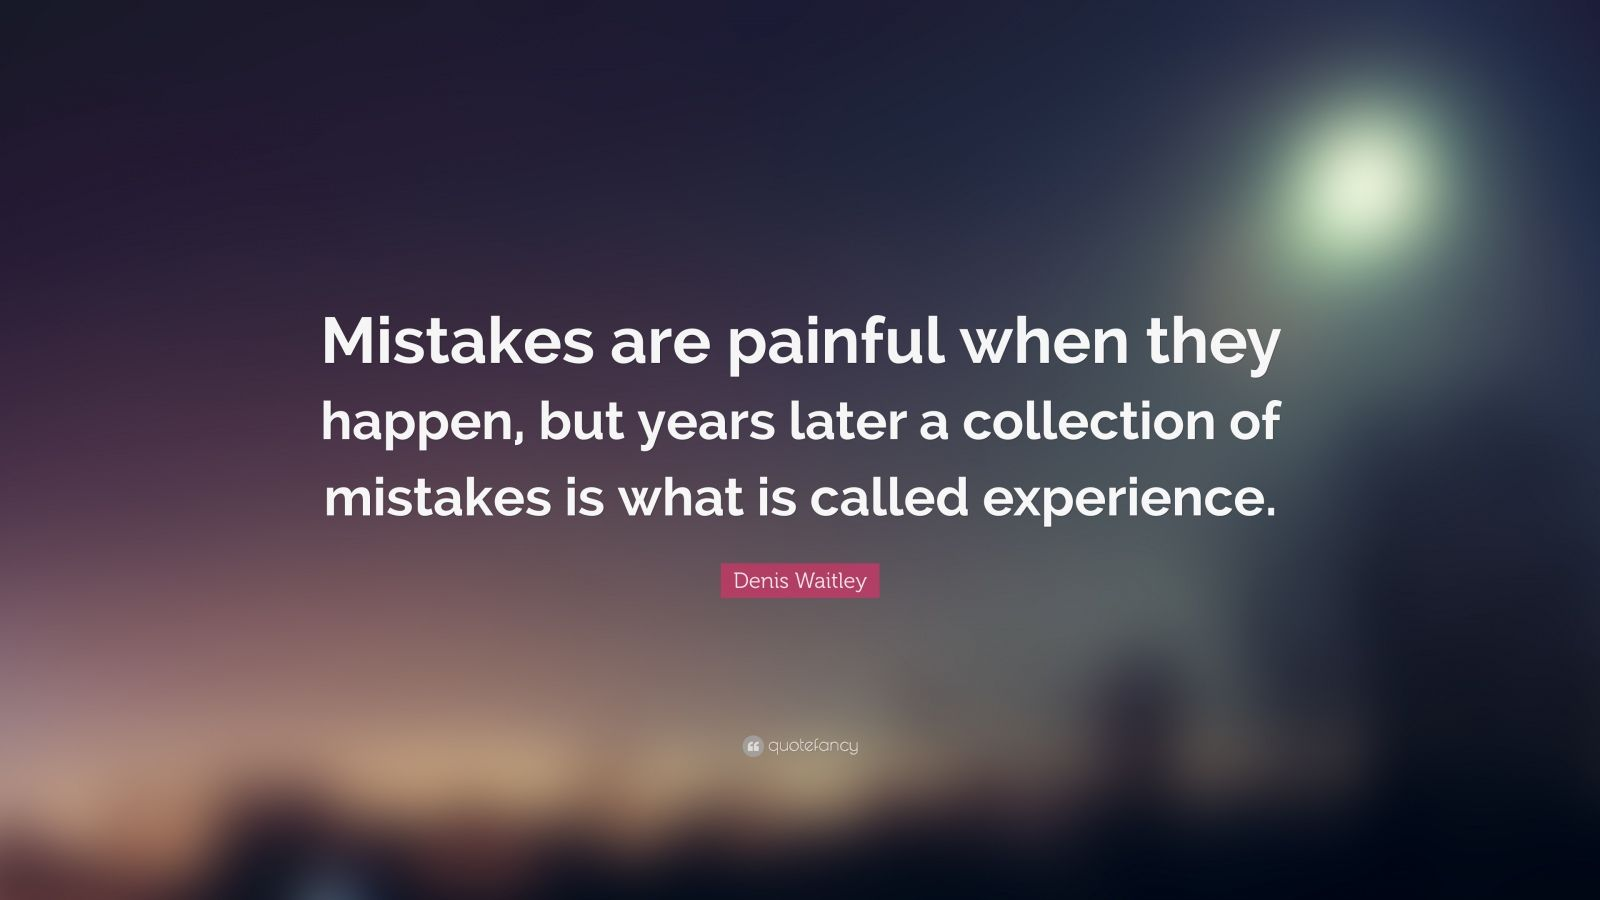 """Denis Waitley Quote: """"Mistakes are painful when they happen, but years later a collection of mistakes is what is called experience."""""""